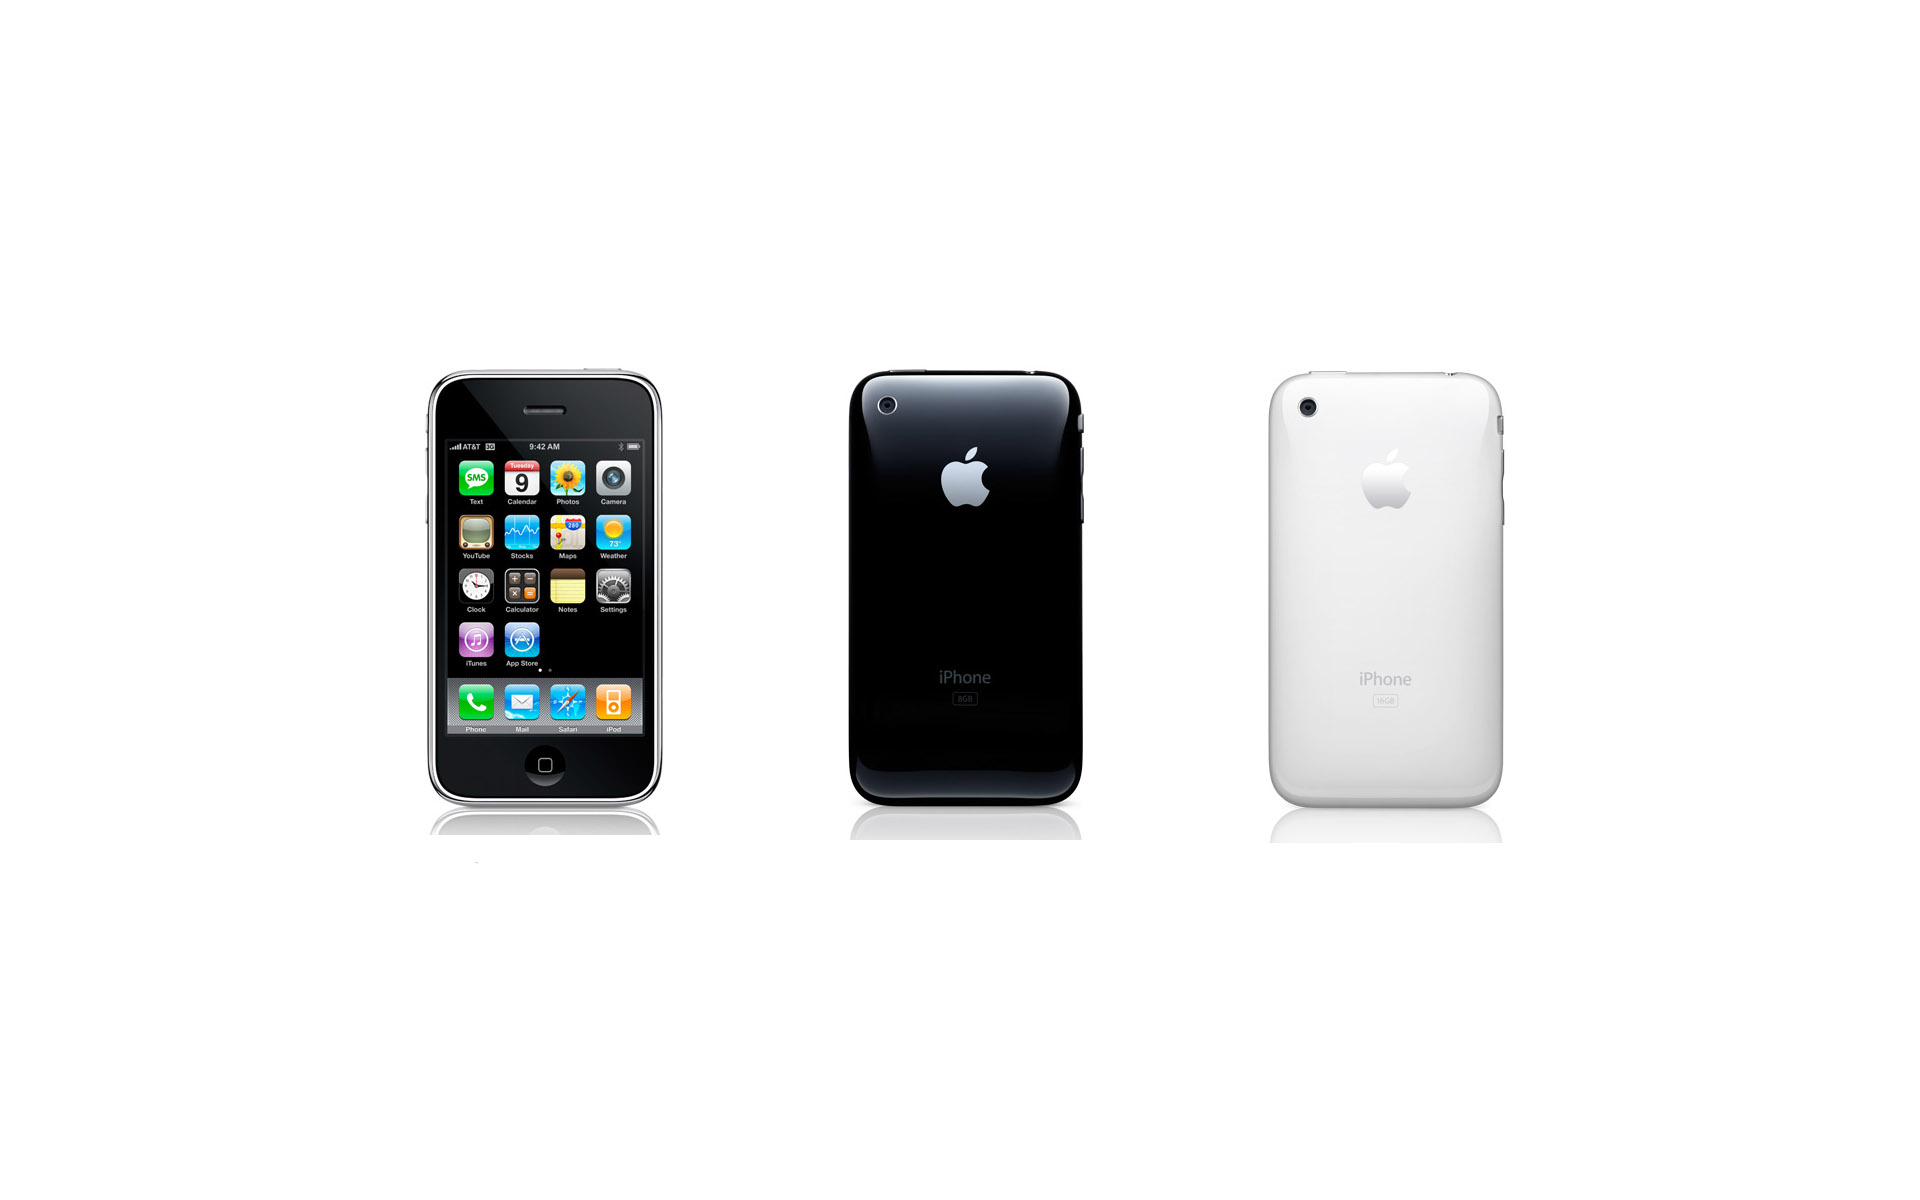 Apple iPhone 152.14 Kb